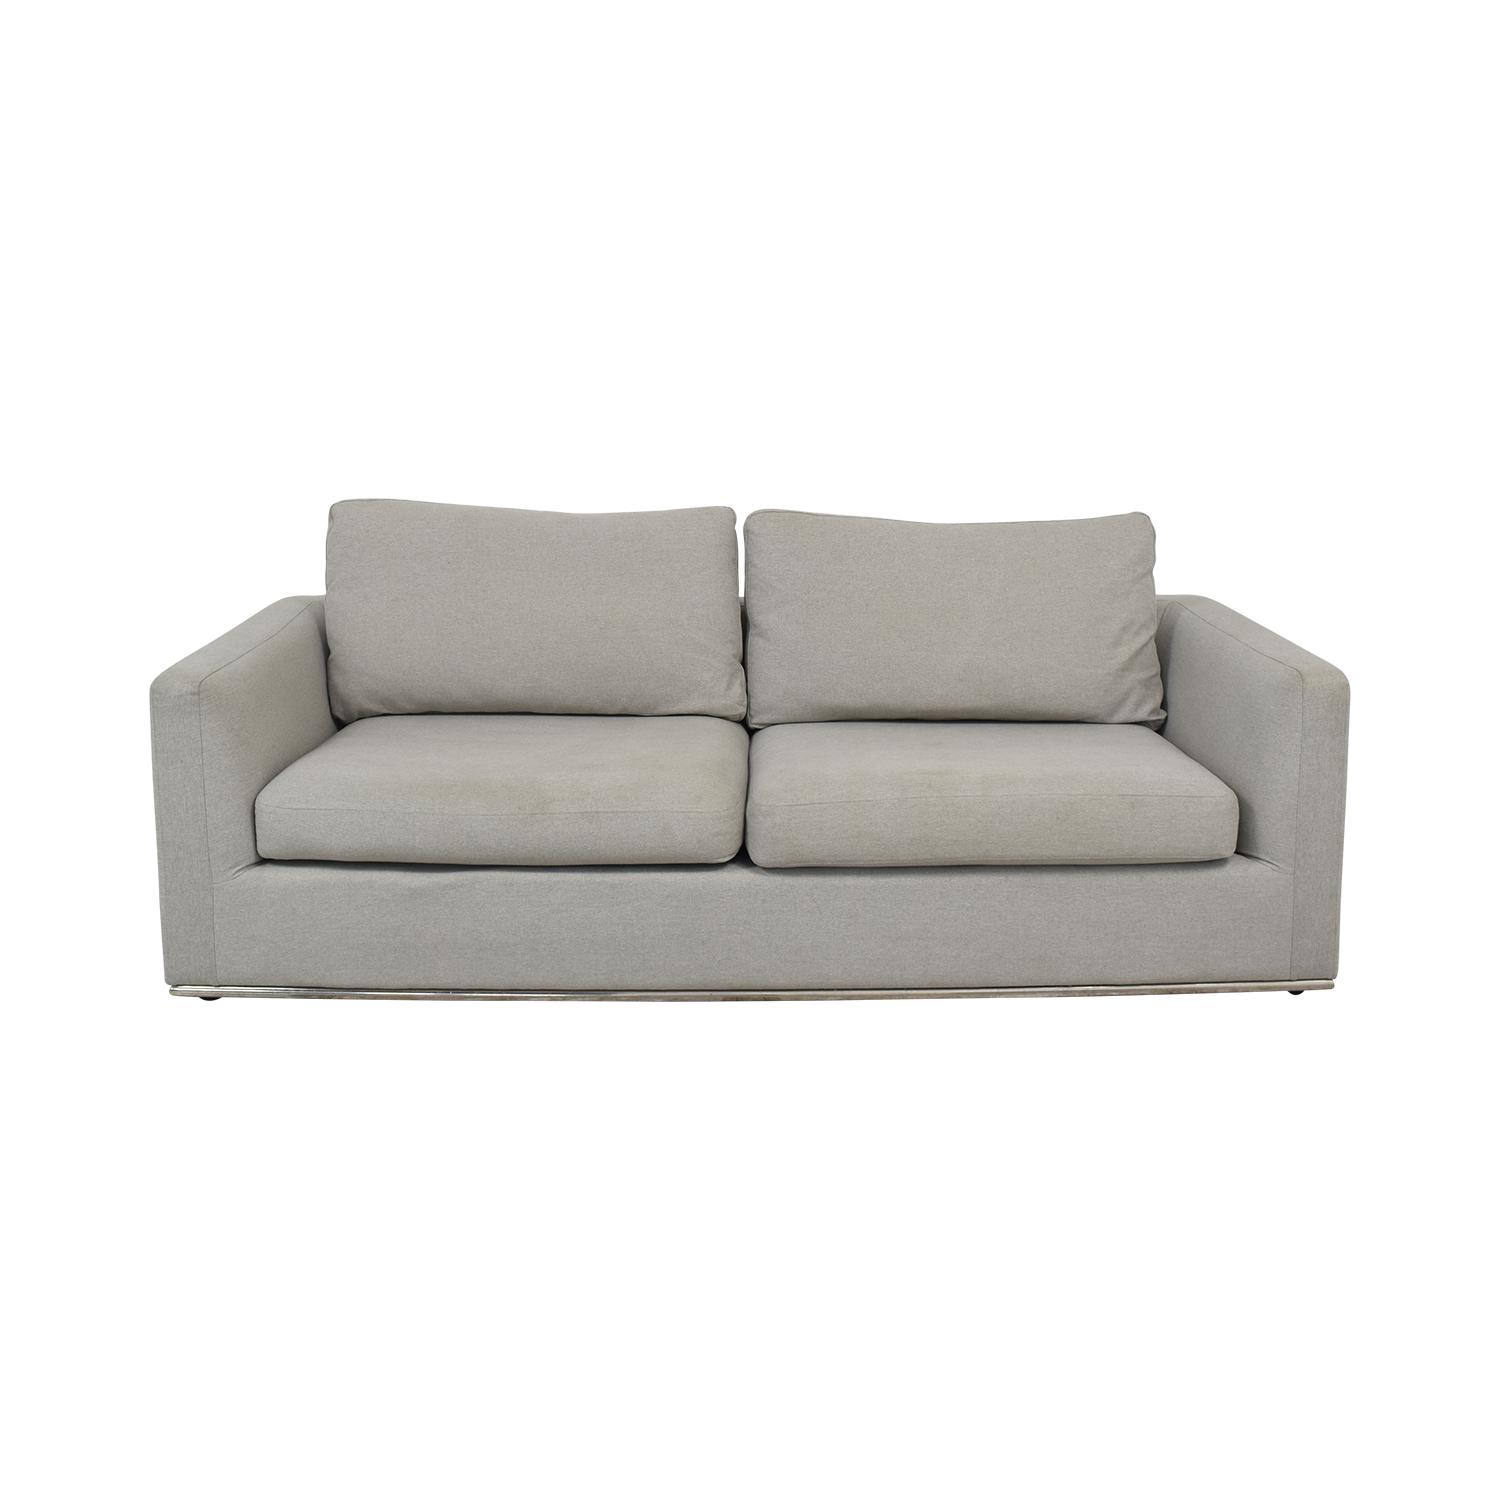 Modani Modern Two Seater Sofa / Sofas